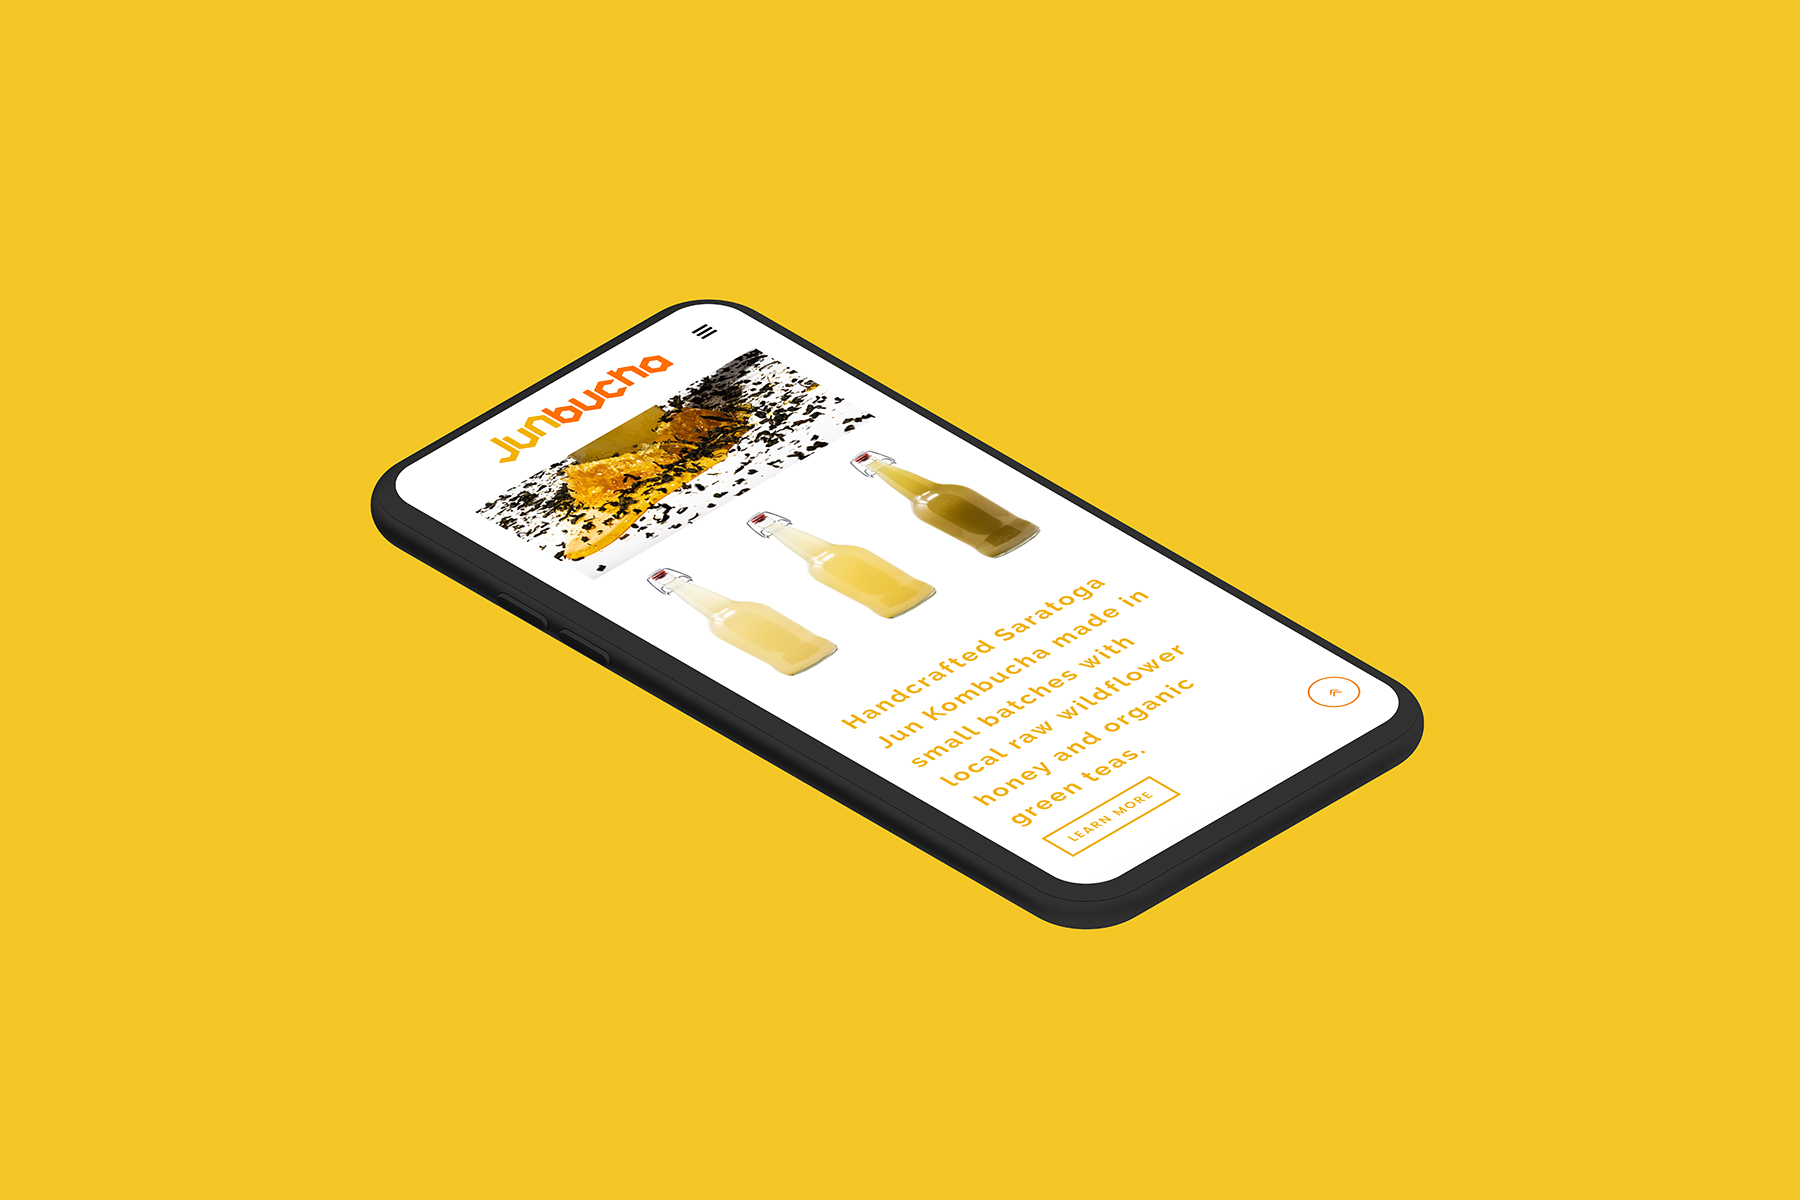 Mobile optimized website on iPhone